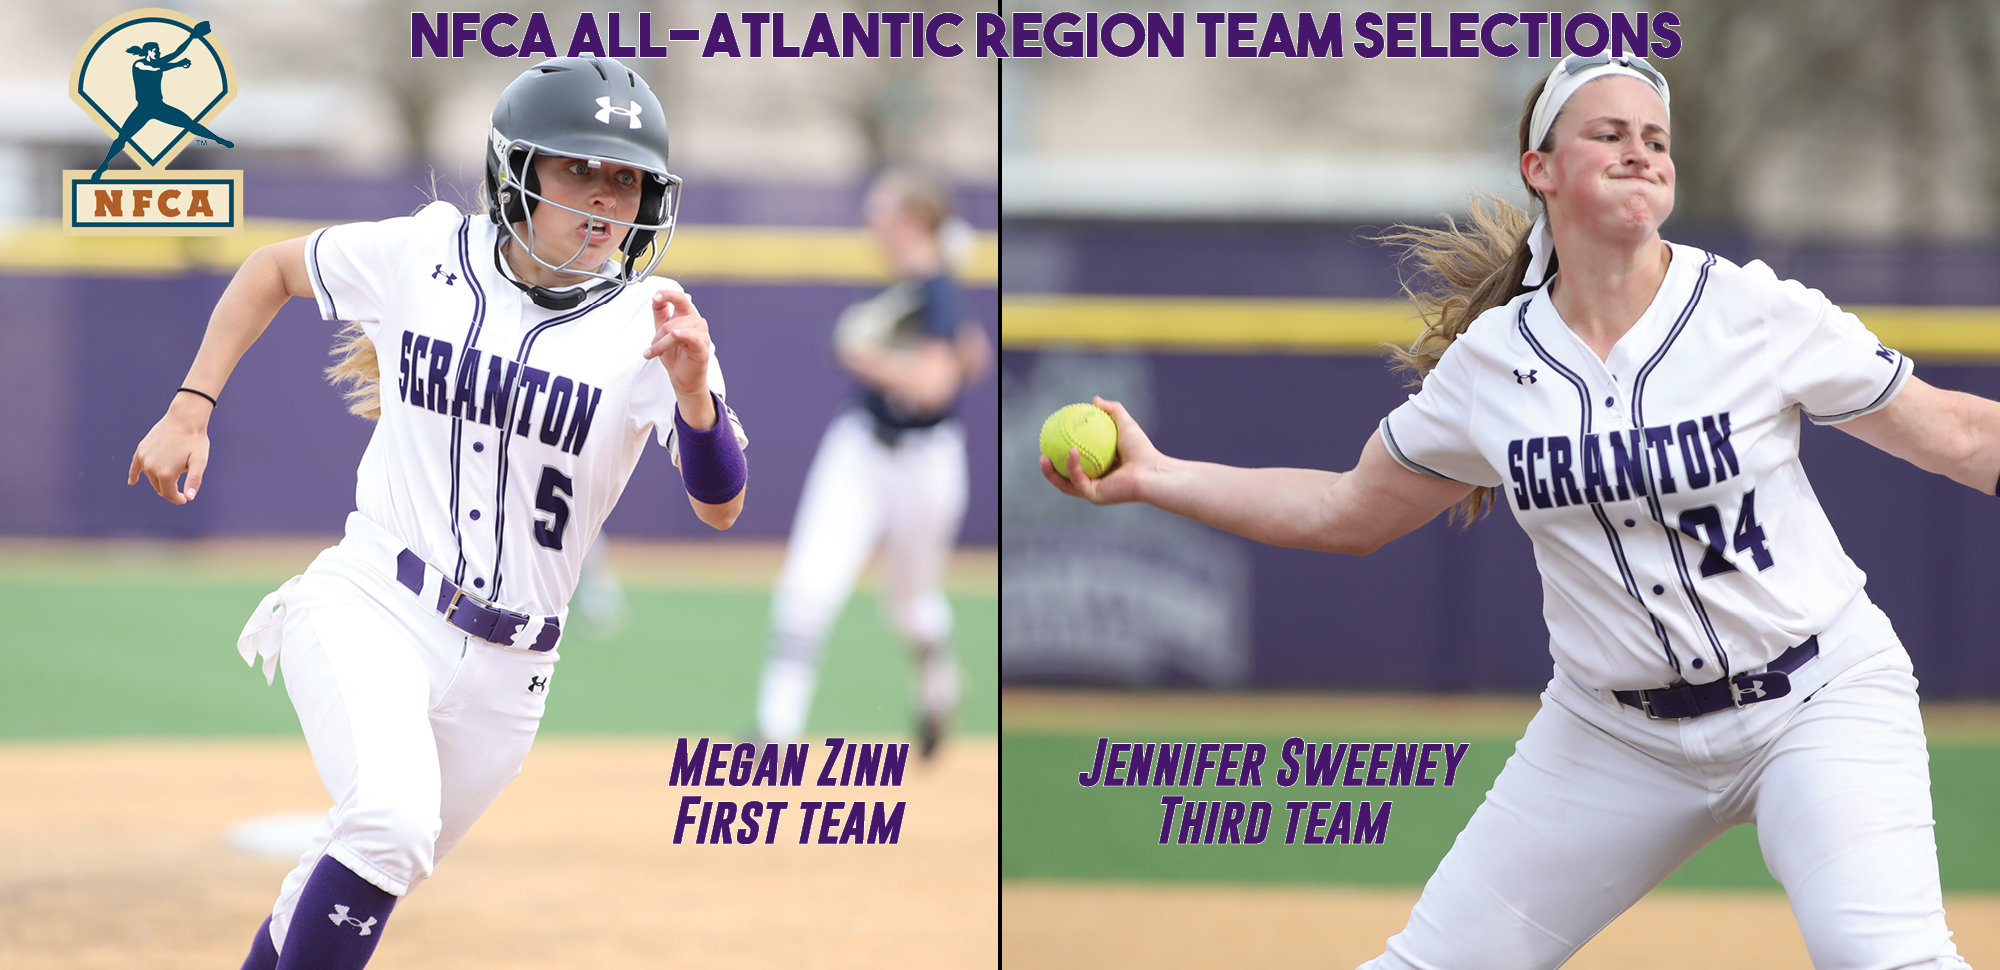 Softball's Zinn, Sweeney Named to NFCA Division III All-Atlantic Region Teams